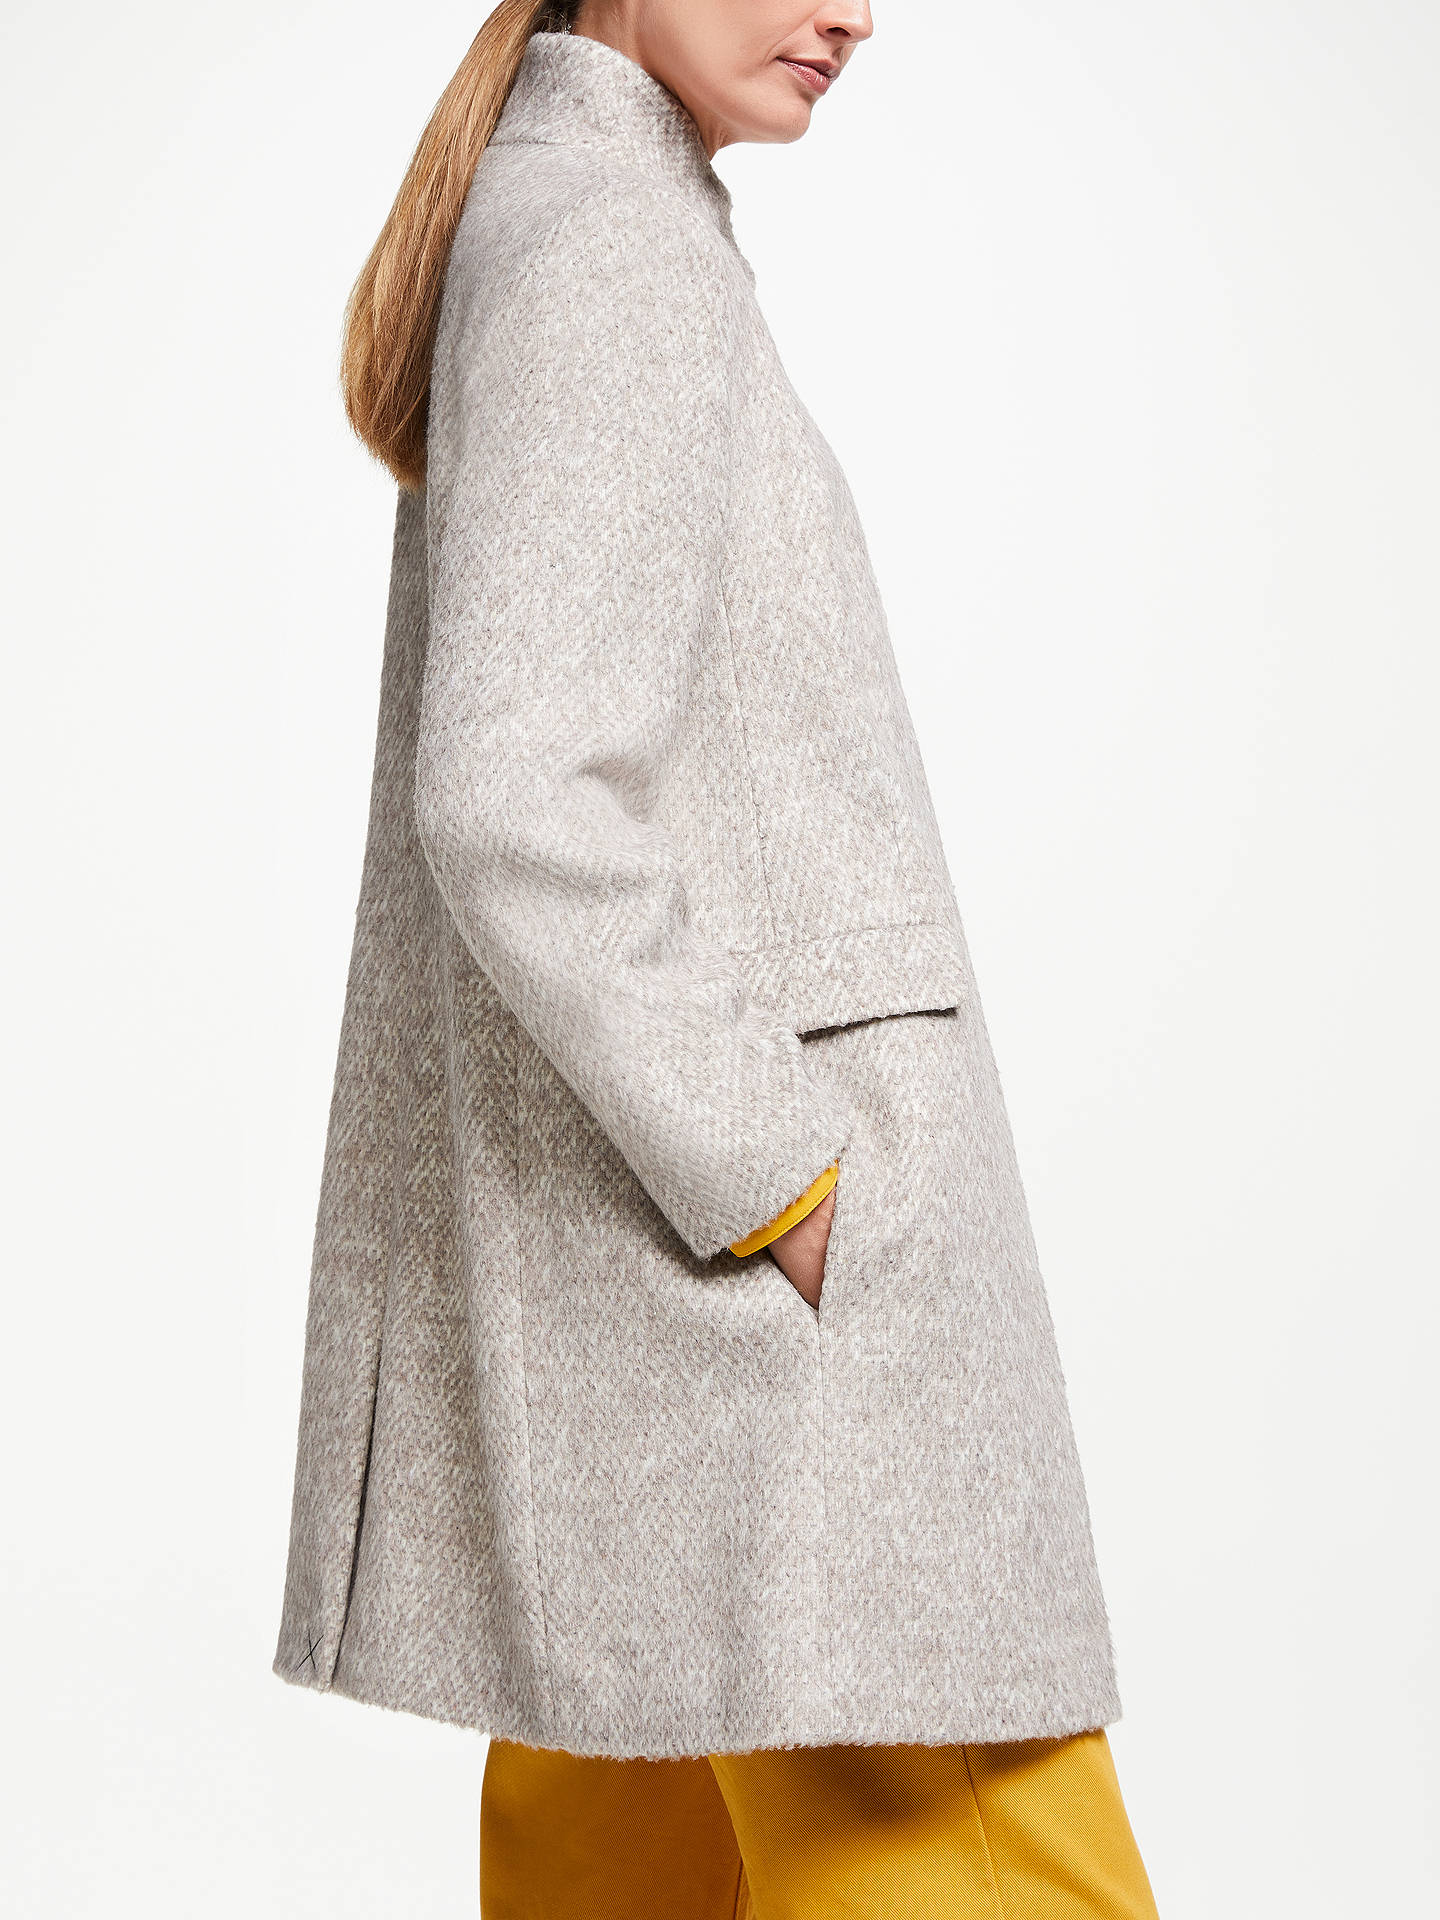 BuyJohn Lewis & Partners Funnel Coat, Camel, 8 Online at johnlewis.com